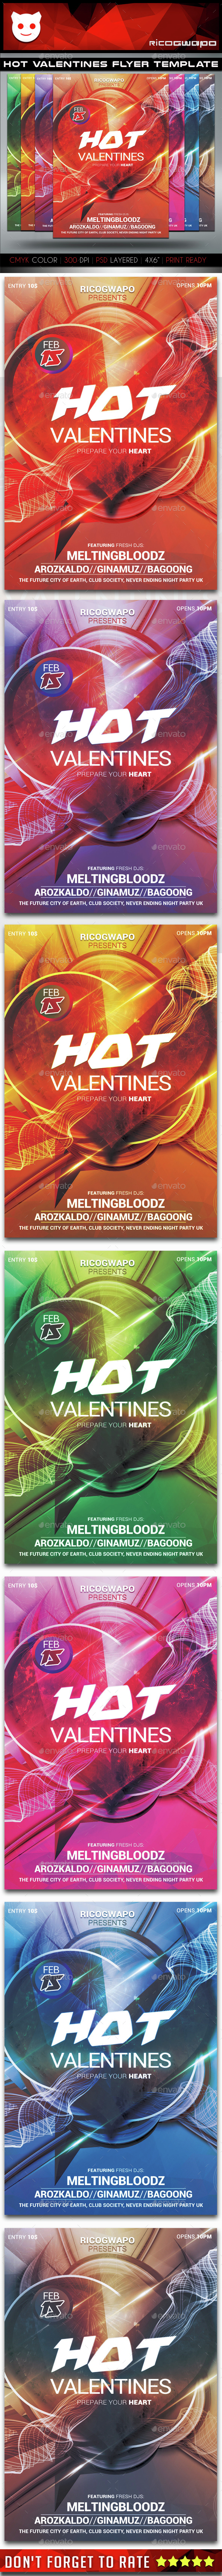 Hot Valentines Flyer Poster